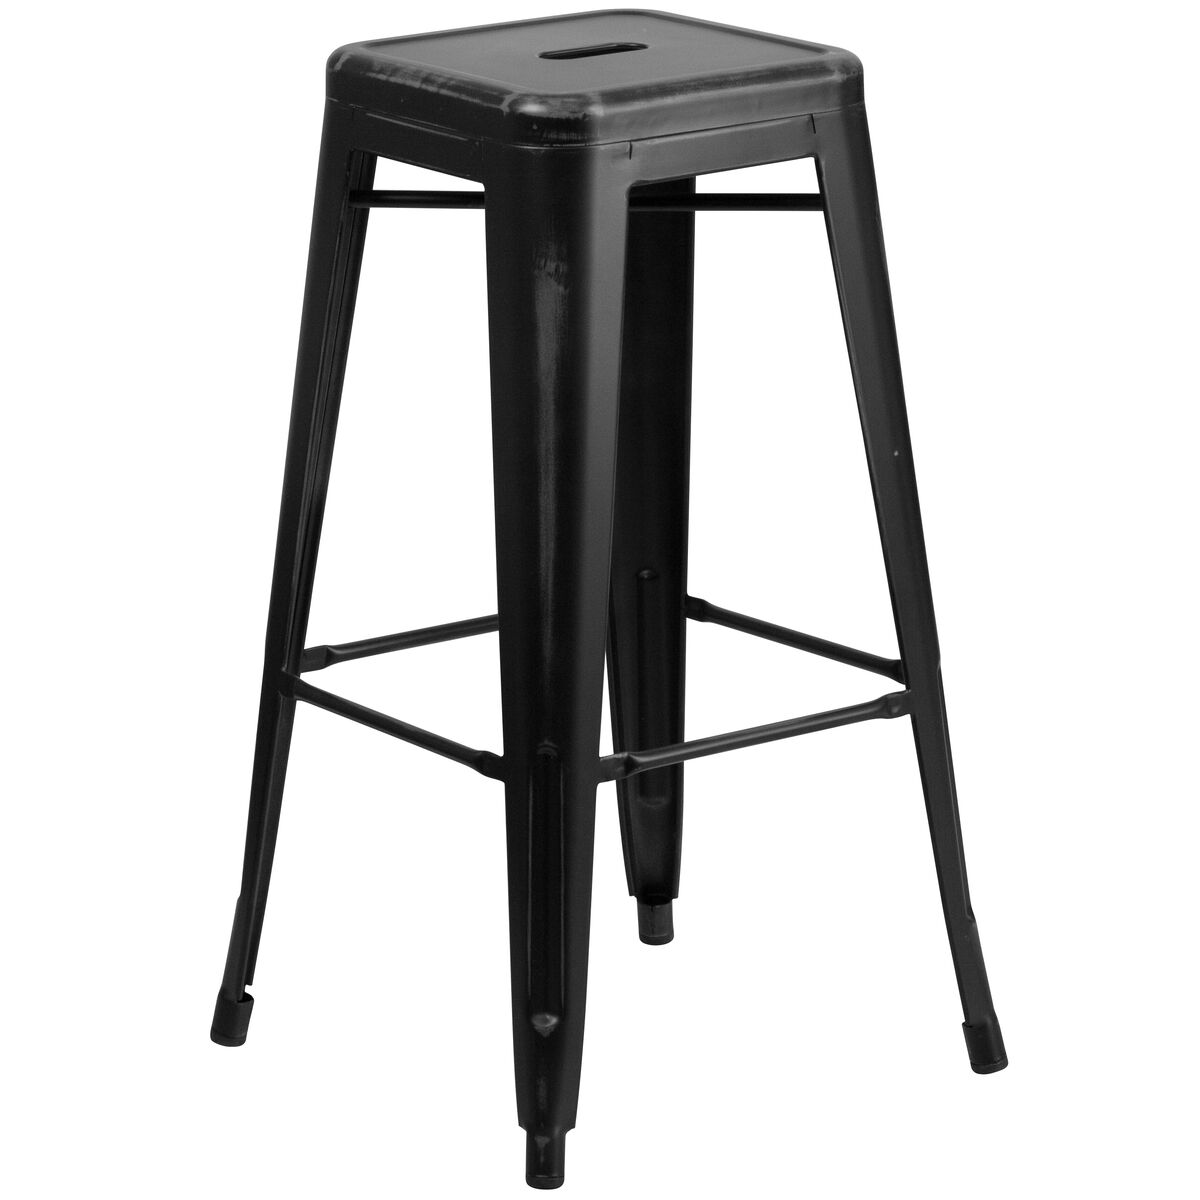 Our 30 High Backless Distressed Black Metal Indoor Outdoor Barstool Is On